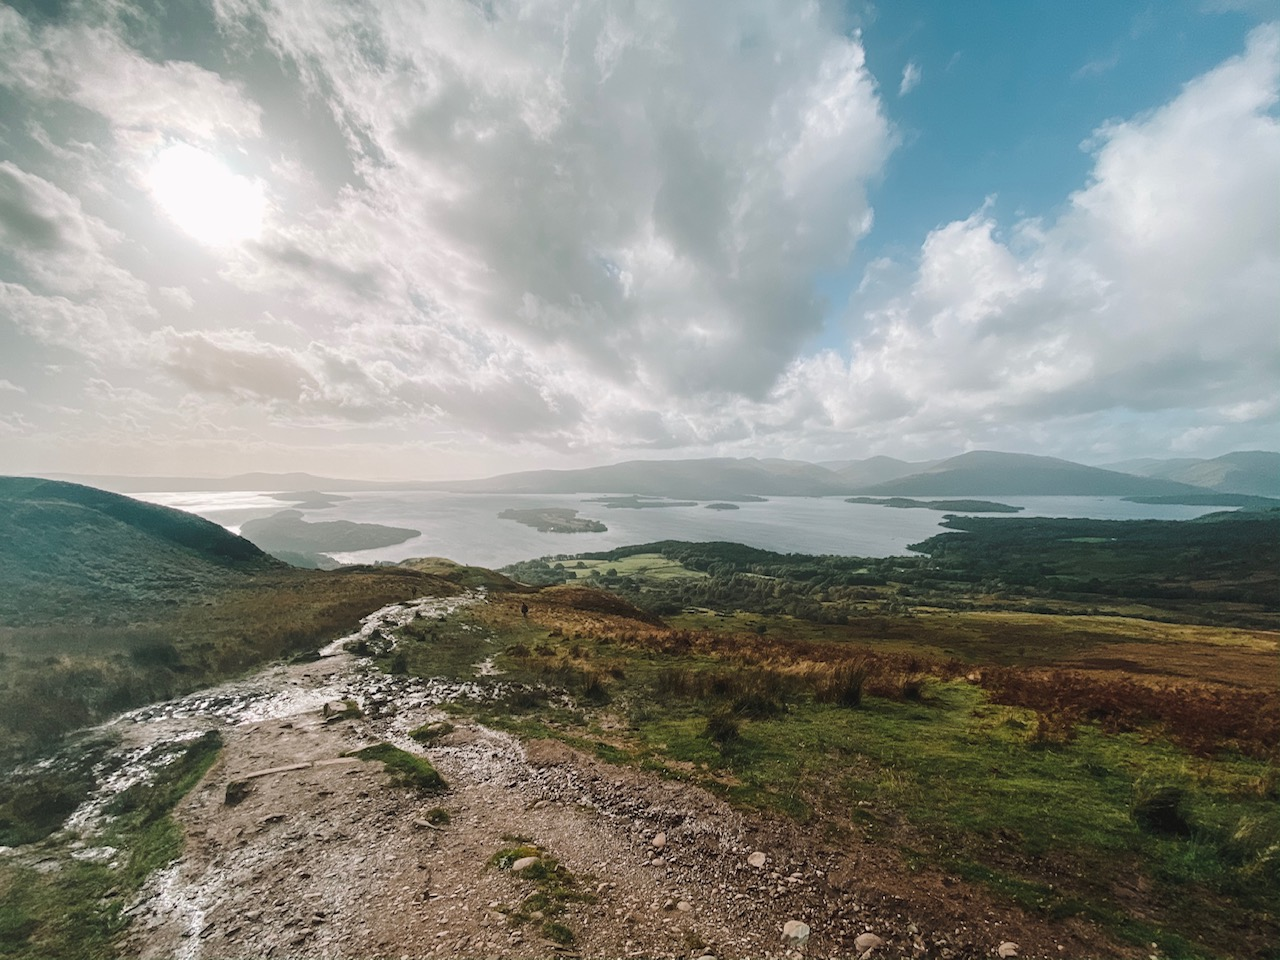 Travel blogger Amanda's OK hikes Conic Hill overlooking Loch Lomond outside of Glasgow, Scotland